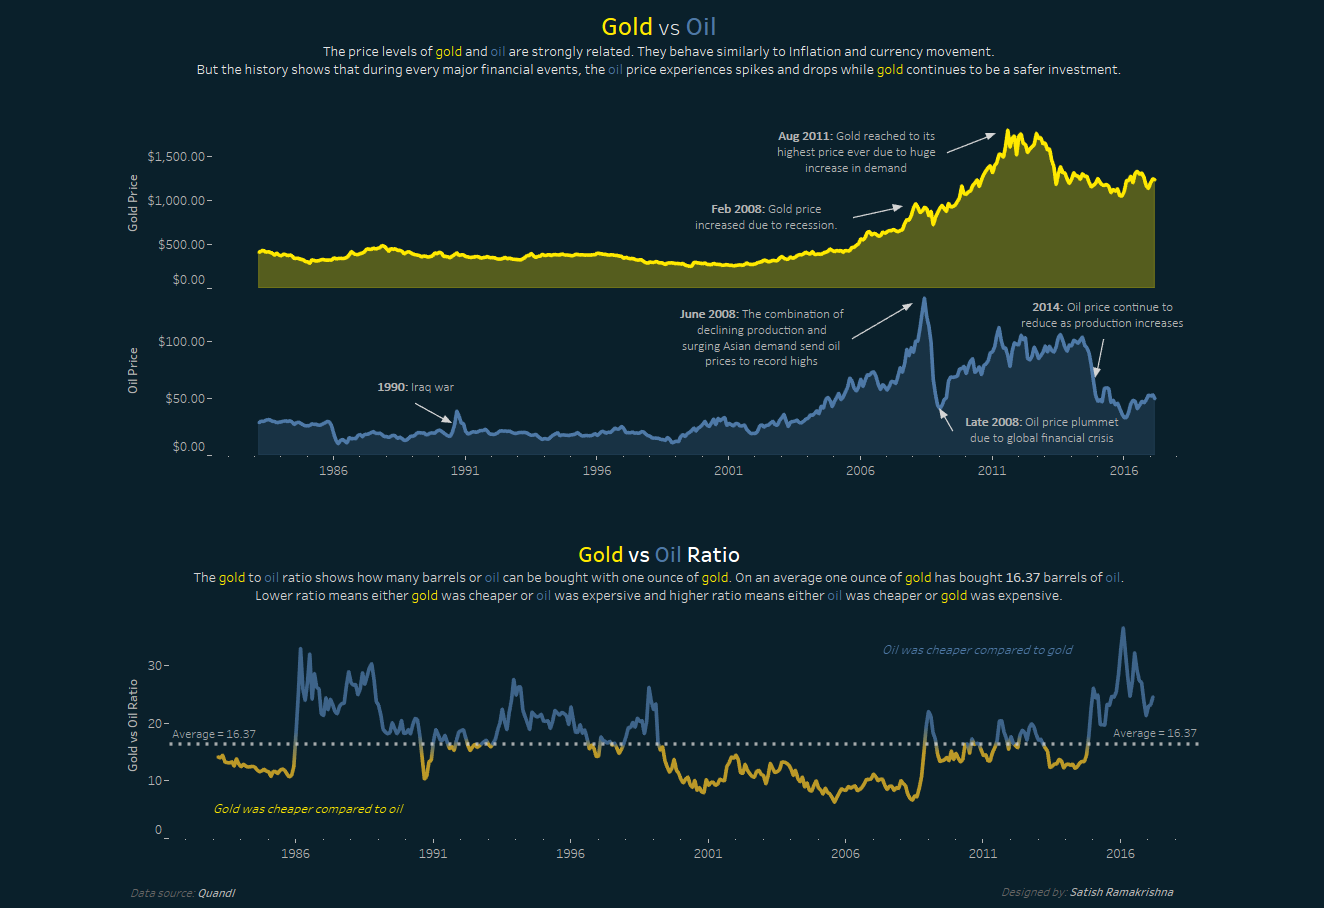 Gold Vs Oil Tableau Visualization